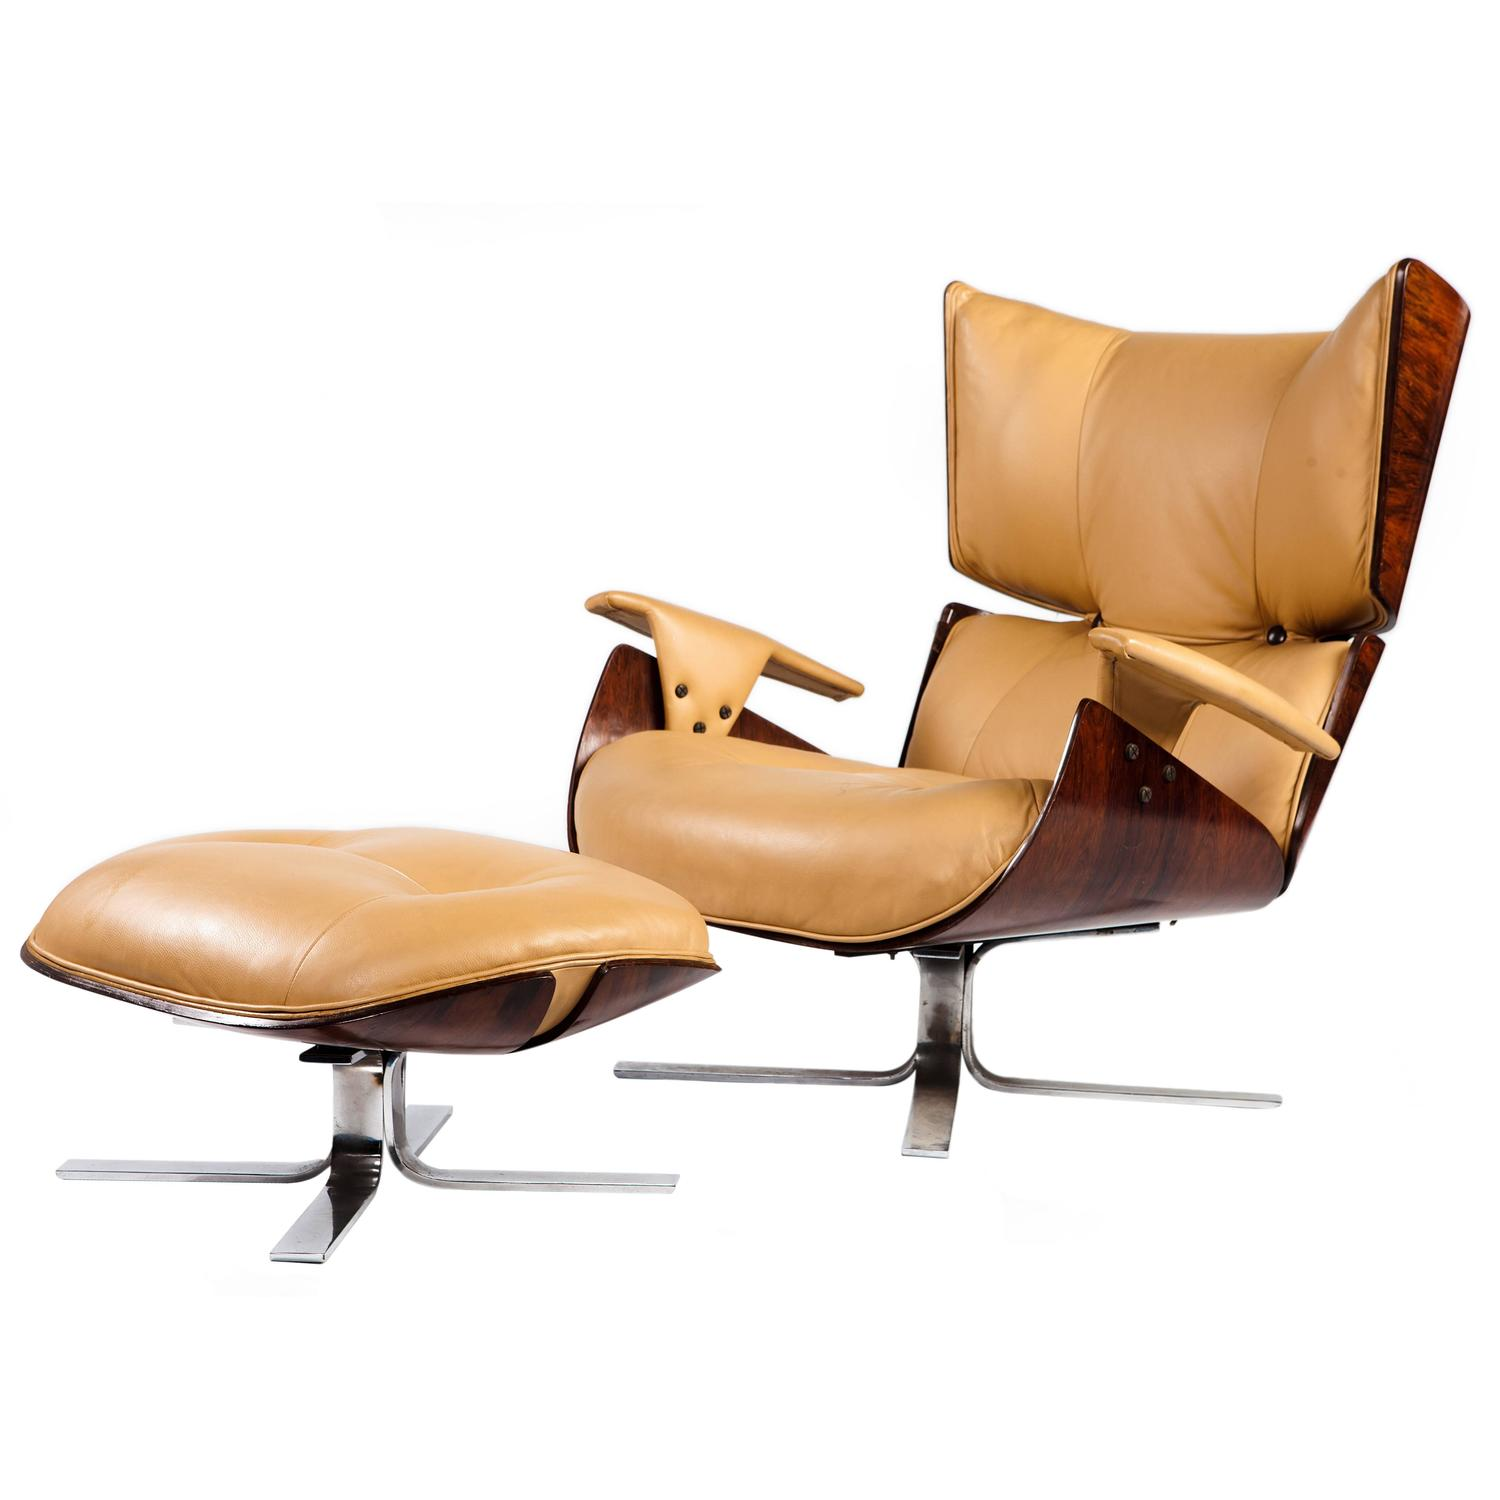 Paulistana mid century modern lounge chair and ottoman for Mid century modern leather chairs